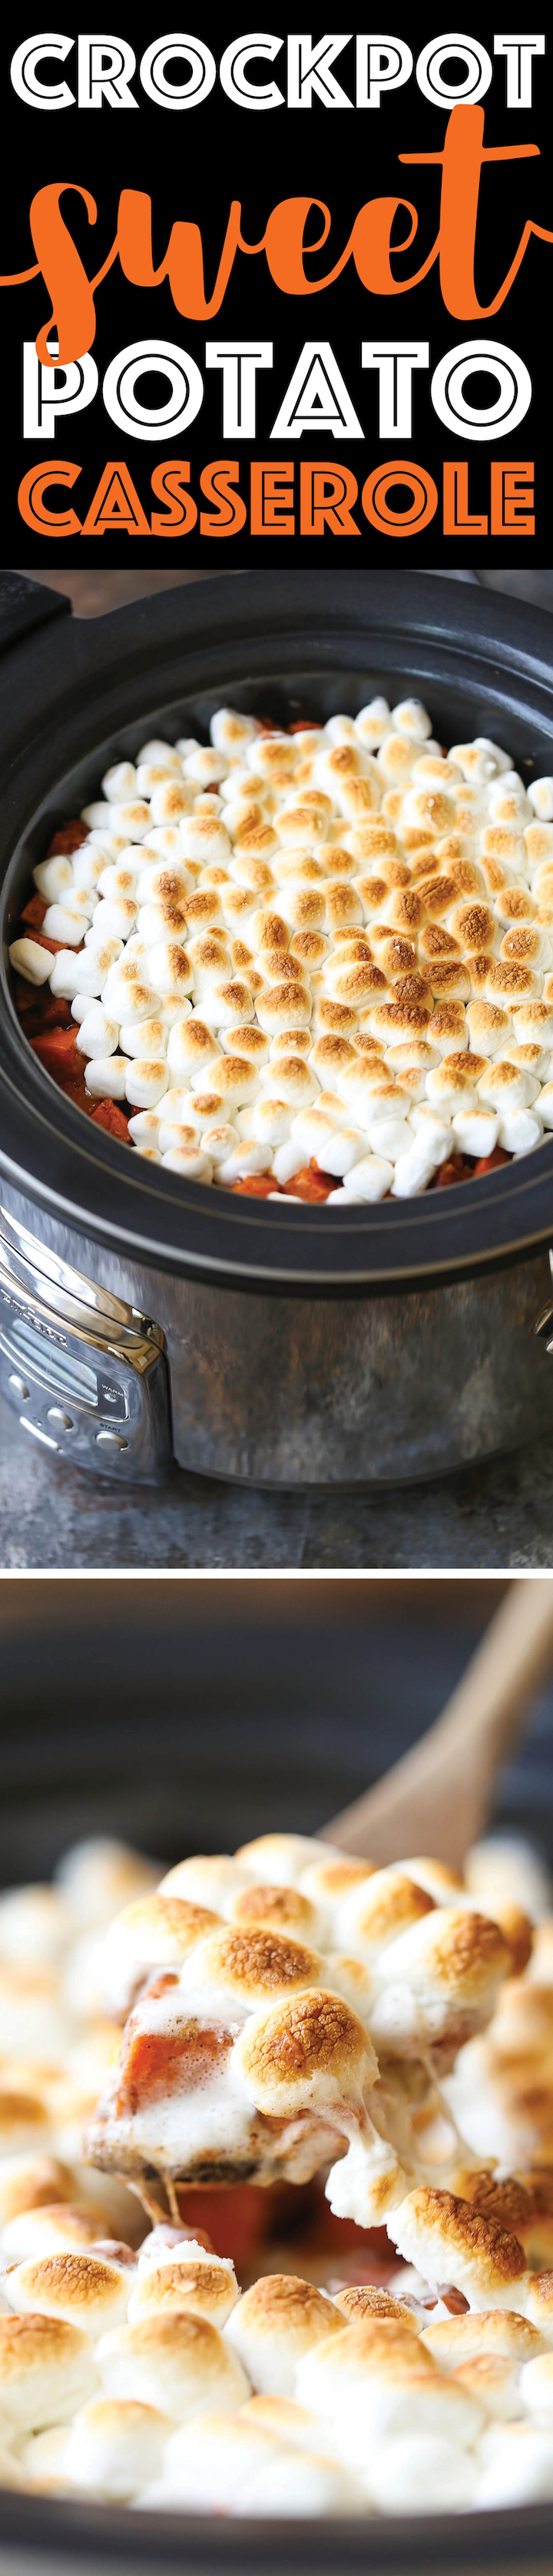 Slow Cooker Sweet Potato Casserole - That ooey gooey marshmallow topping!!!! All made in a crockpot. So easy without taking any oven space. Double win!